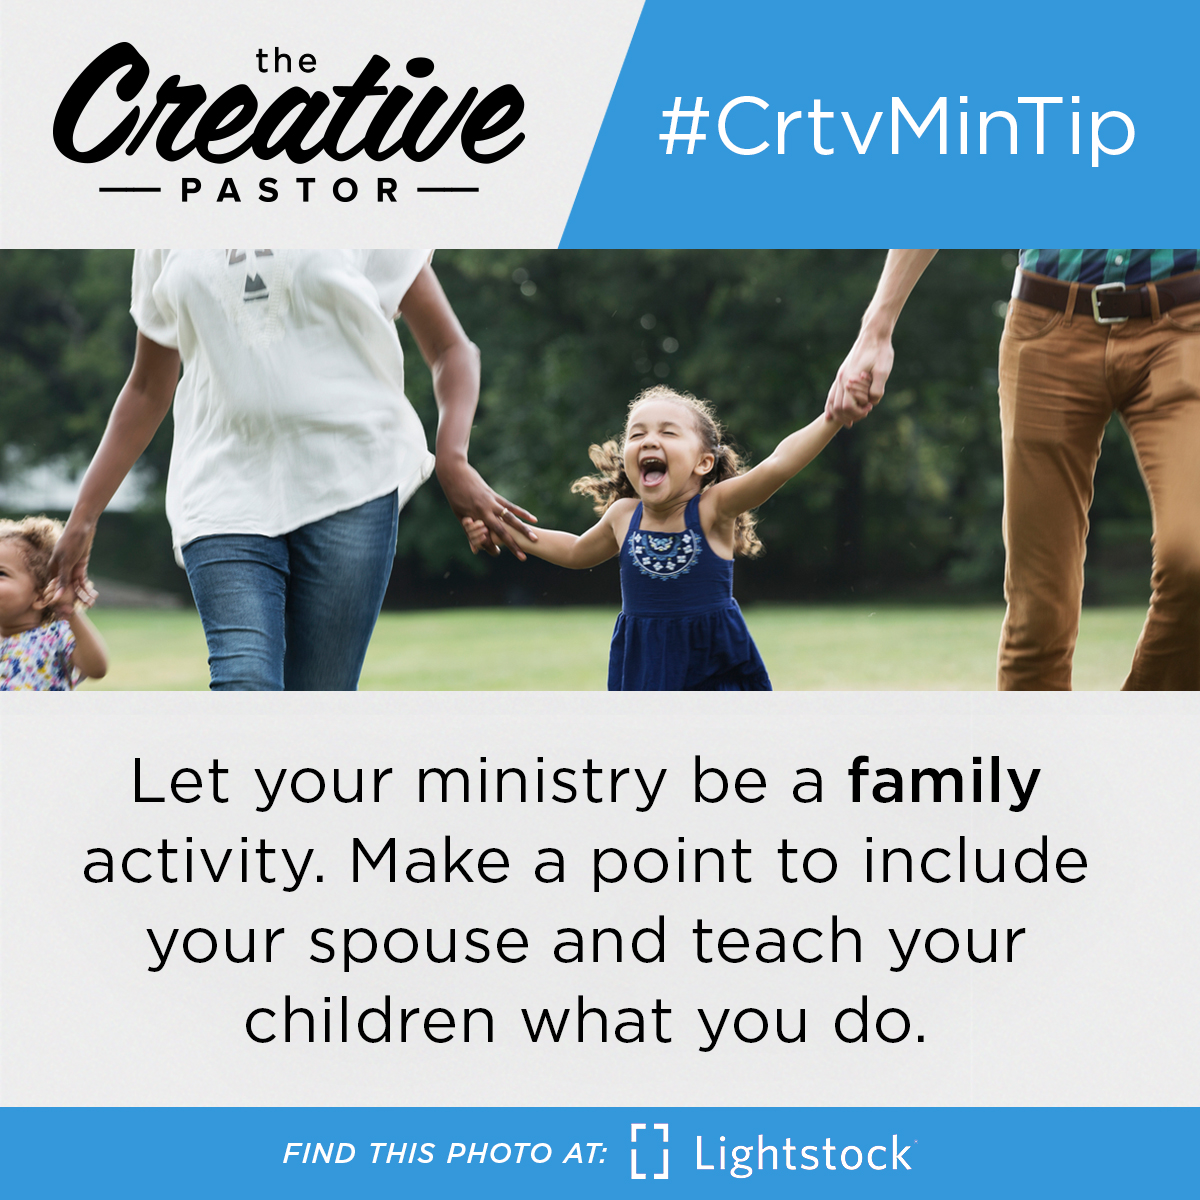 #CrtvMinTip: Let your ministry be a family activity. Make a point to include your spouse and teach your children what you do.